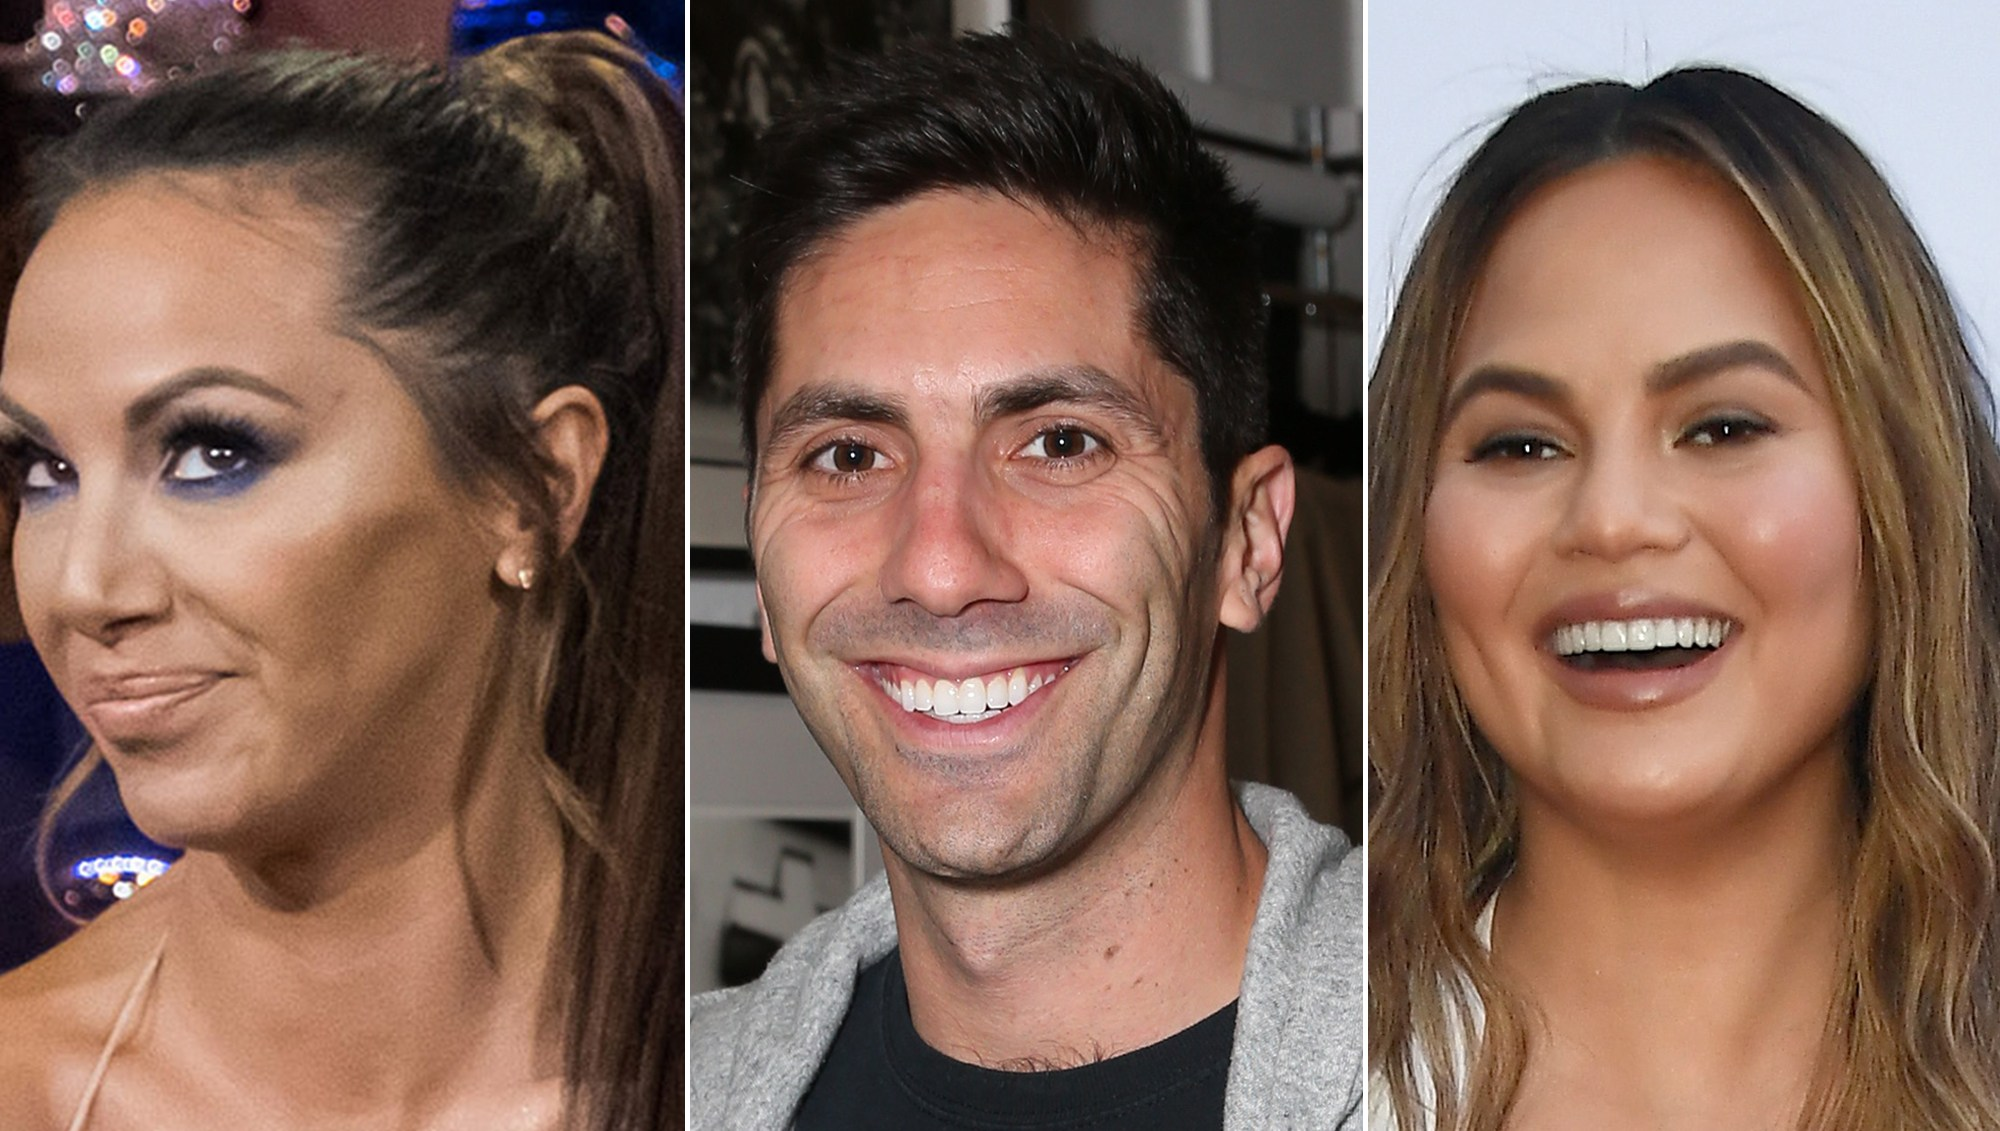 Nev Schulman Teases Celebs Joining 'Catfish' After Max Joseph's Exits